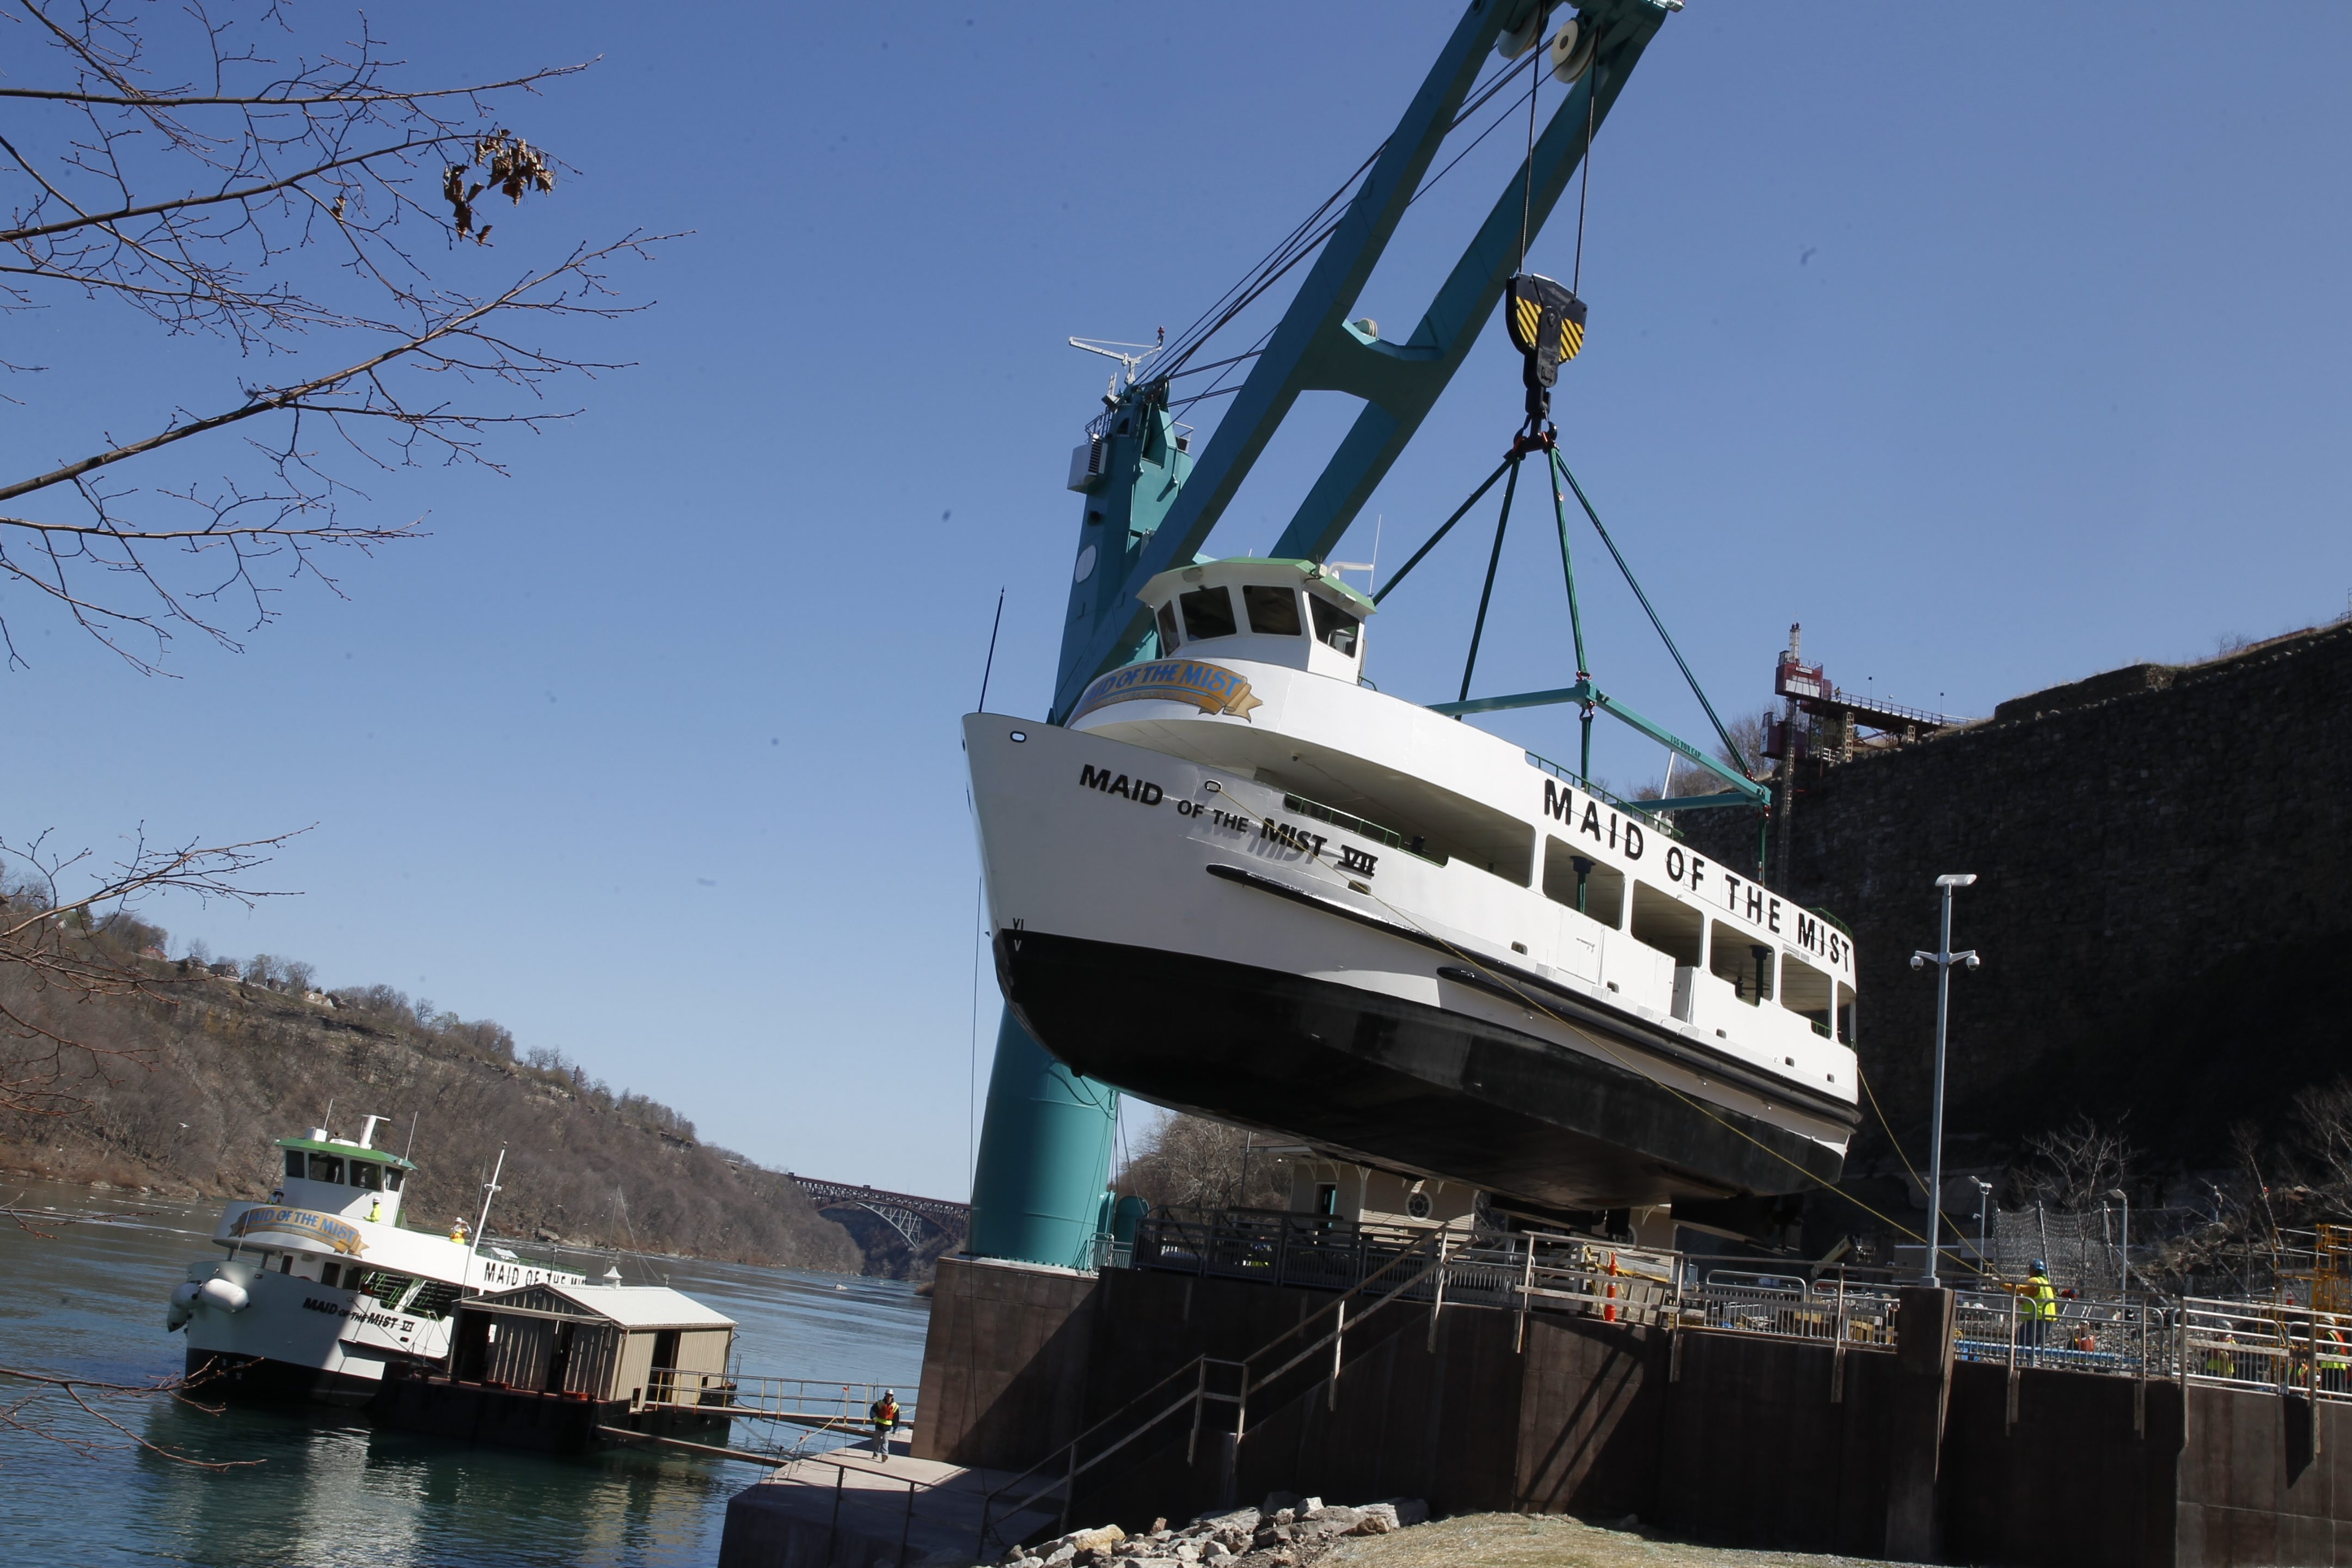 Maid of the Mist  VII is put in the Lower Niagara River  at  the drydocks built in the Niagara Gorge.  (John Hickey /News file photo)